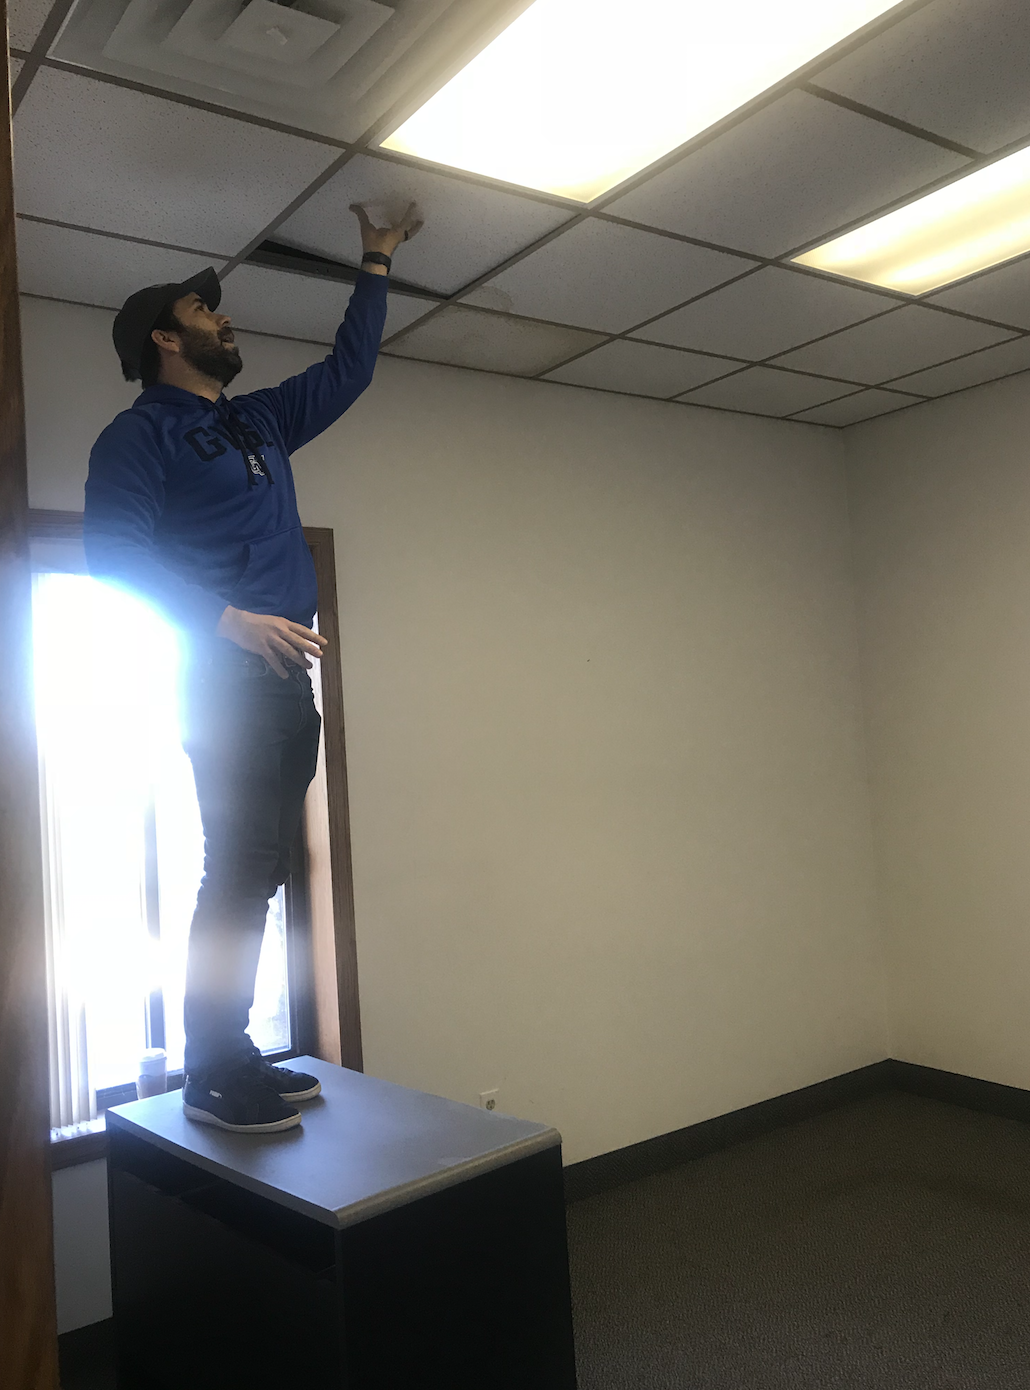 Before - Here's Justin removing a ceiling tile to see what was above the drop ceiling to know if we could remove it or not. This was a pivotal moment in the initial office tour.